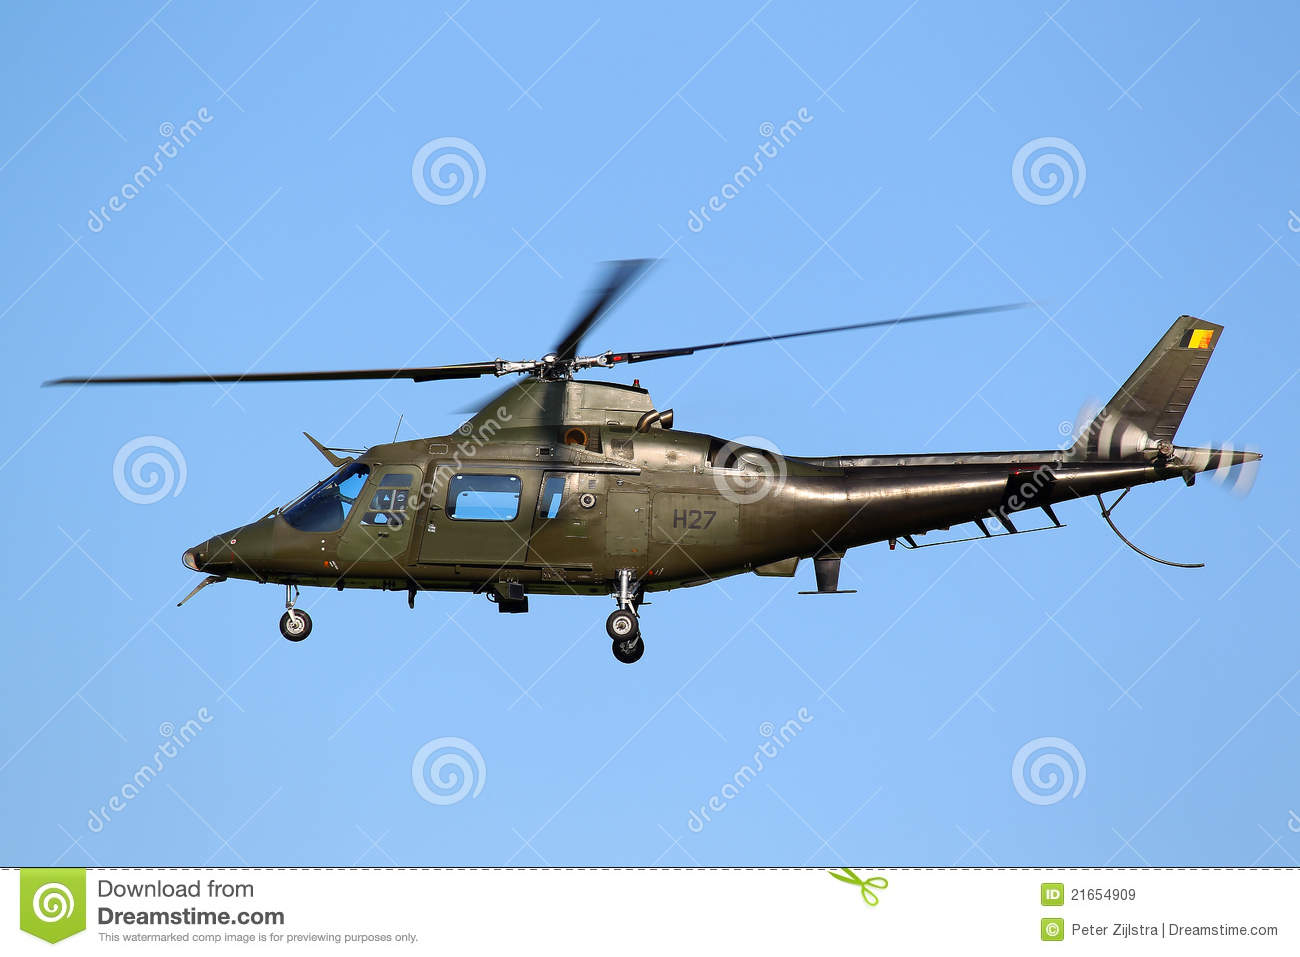 agusta 109 helicopter with Royalty Vrije Stock Afbeeldingen Het Legerhelikopter Van Agusta 109 Image21654909 on Nervesabattaglia as well Trento13 moreover Novo Helicoptero Da Policia Militar De also Agustawestland Aw 109 n449j  Private 64228 large also Basis Basel.